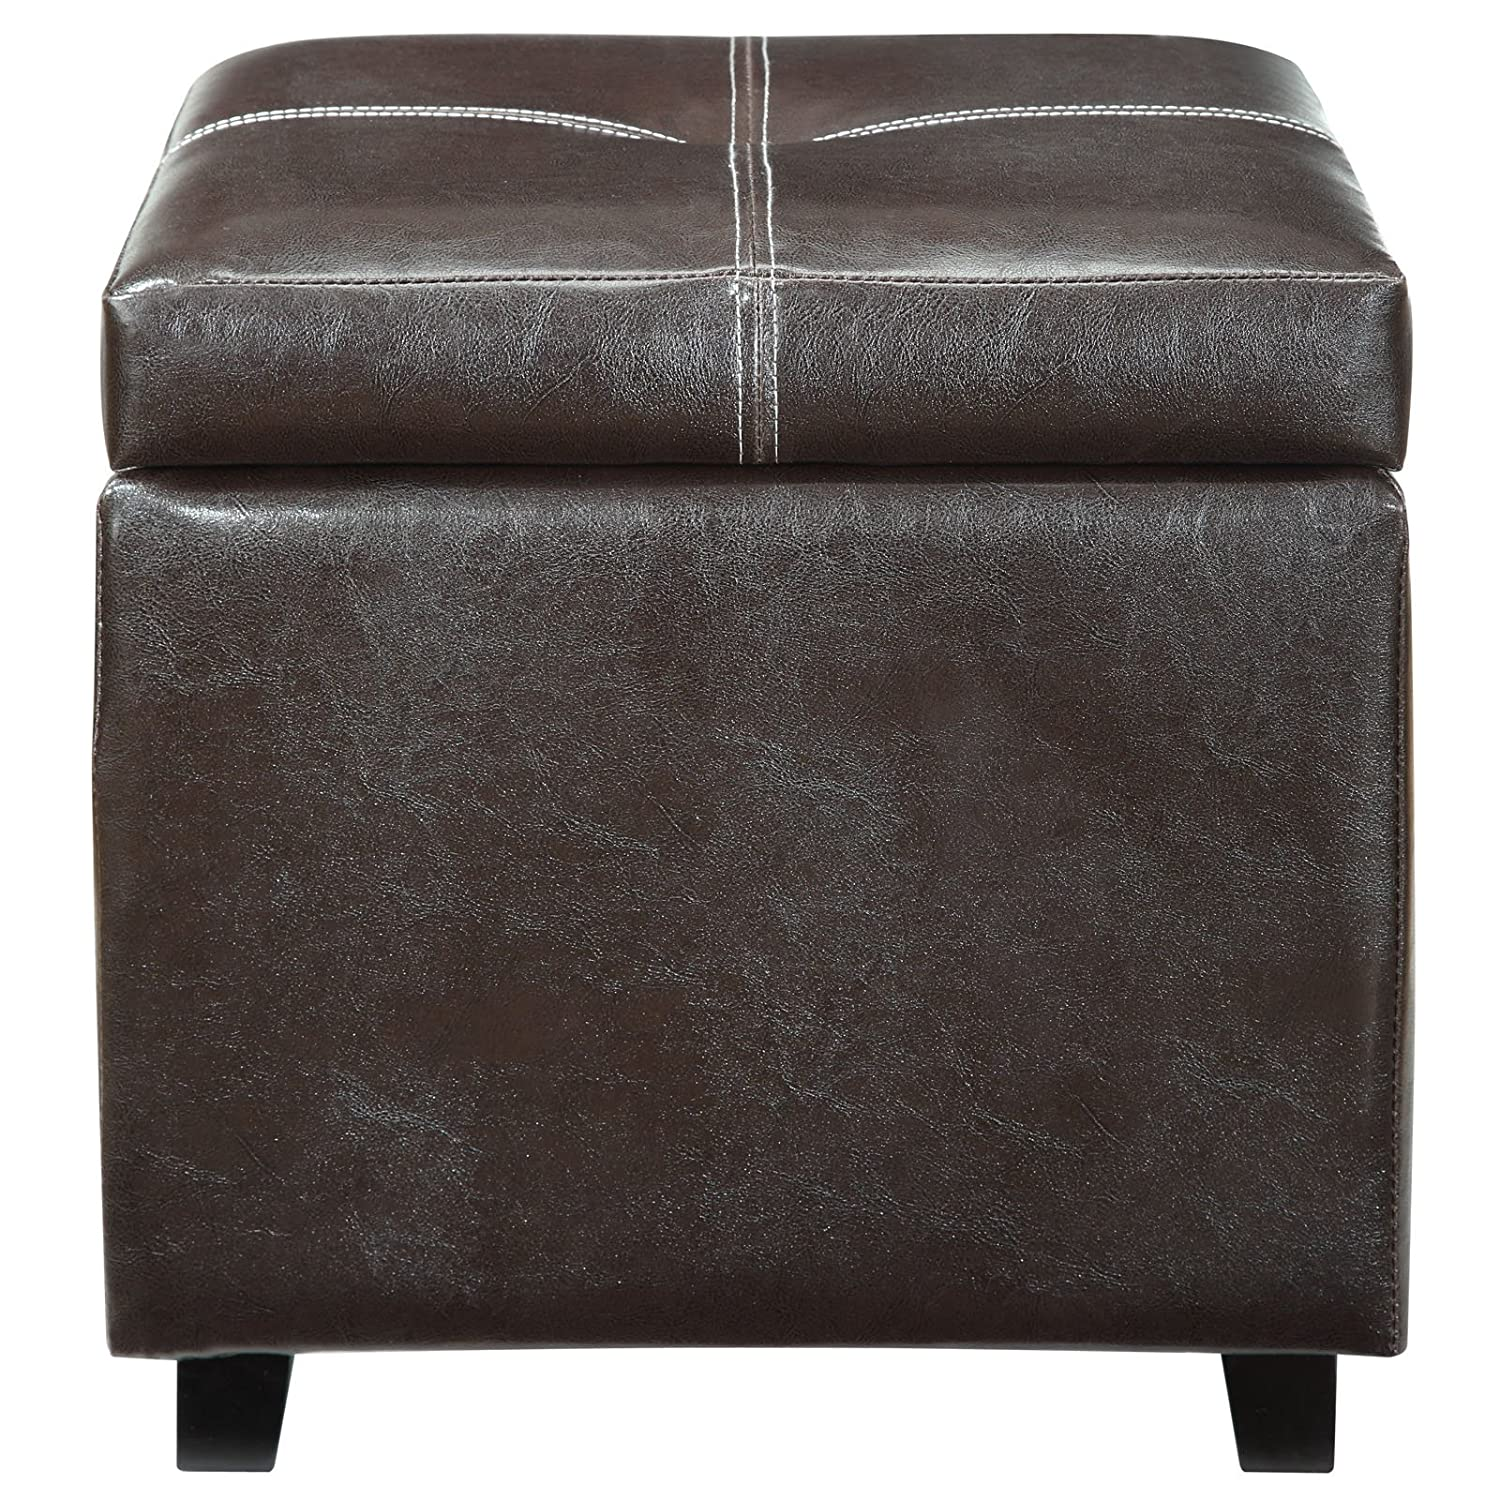 Amazon.com Modway Treasure Espresso Vinyl Storage Cube Ottoman Kitchen u0026 Dining  sc 1 st  Amazon.com & Amazon.com: Modway Treasure Espresso Vinyl Storage Cube Ottoman ...